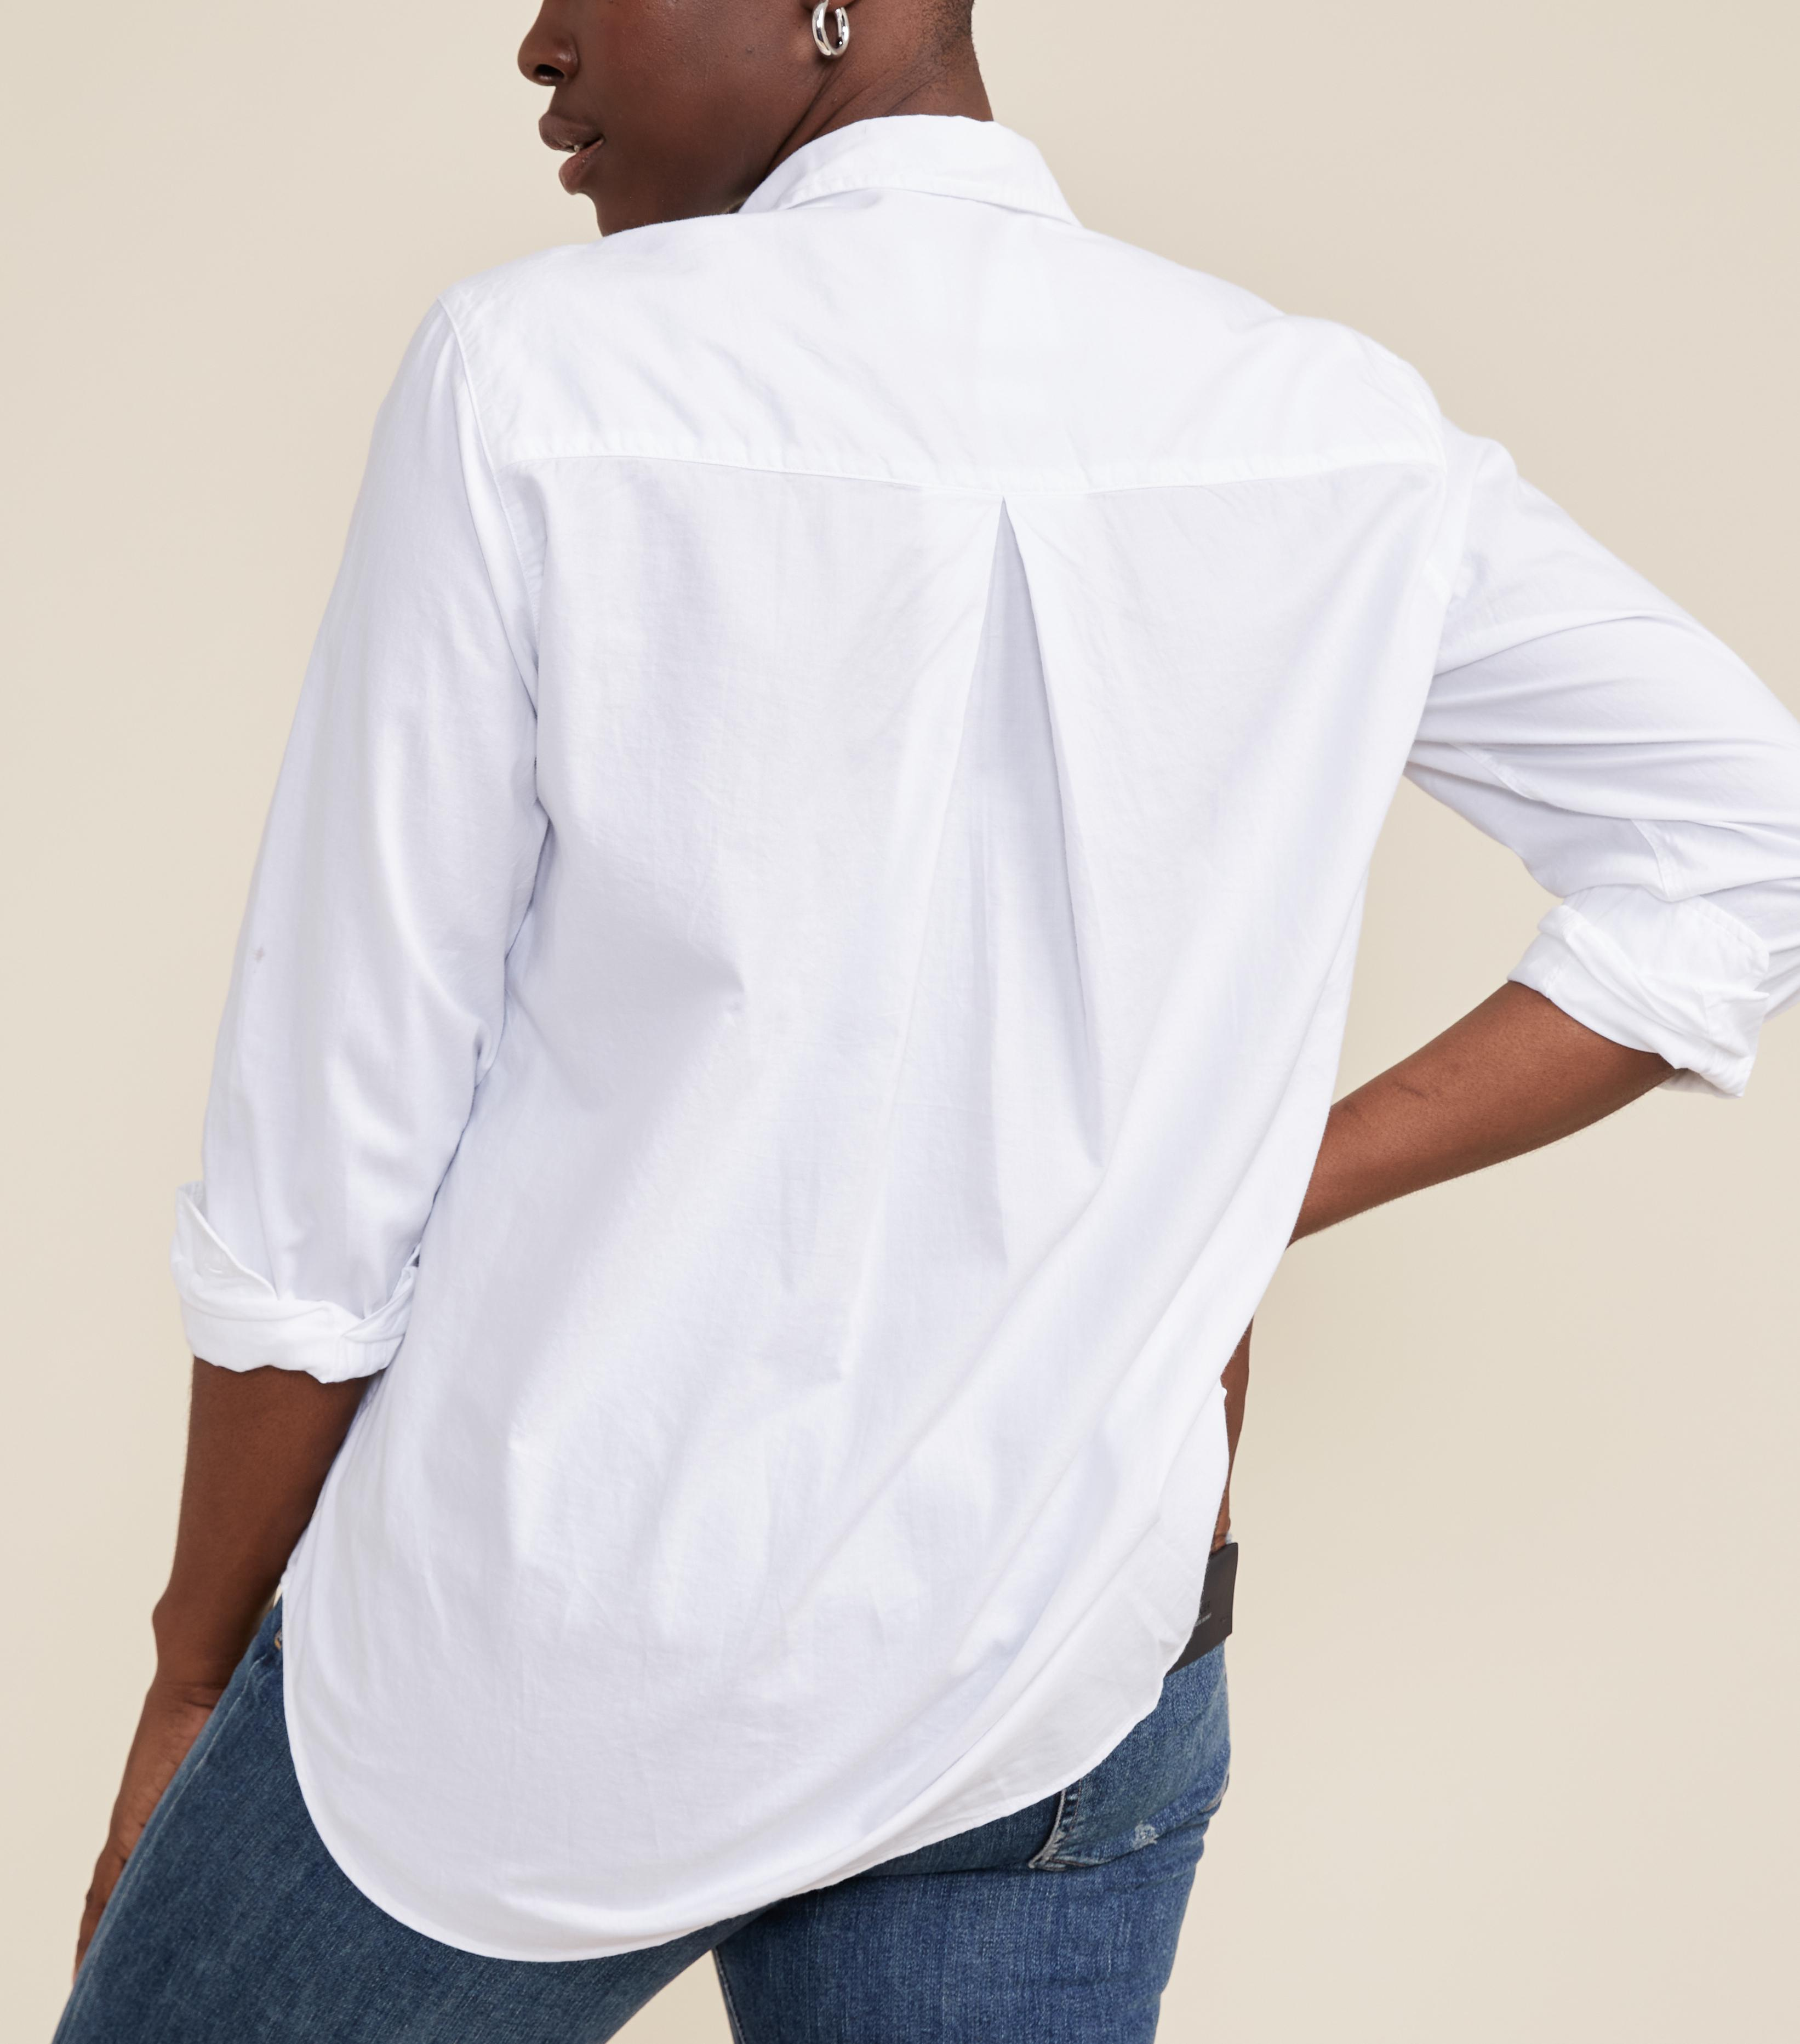 The Hero Button-Up Shirt Driven, Brushed Cotton 2